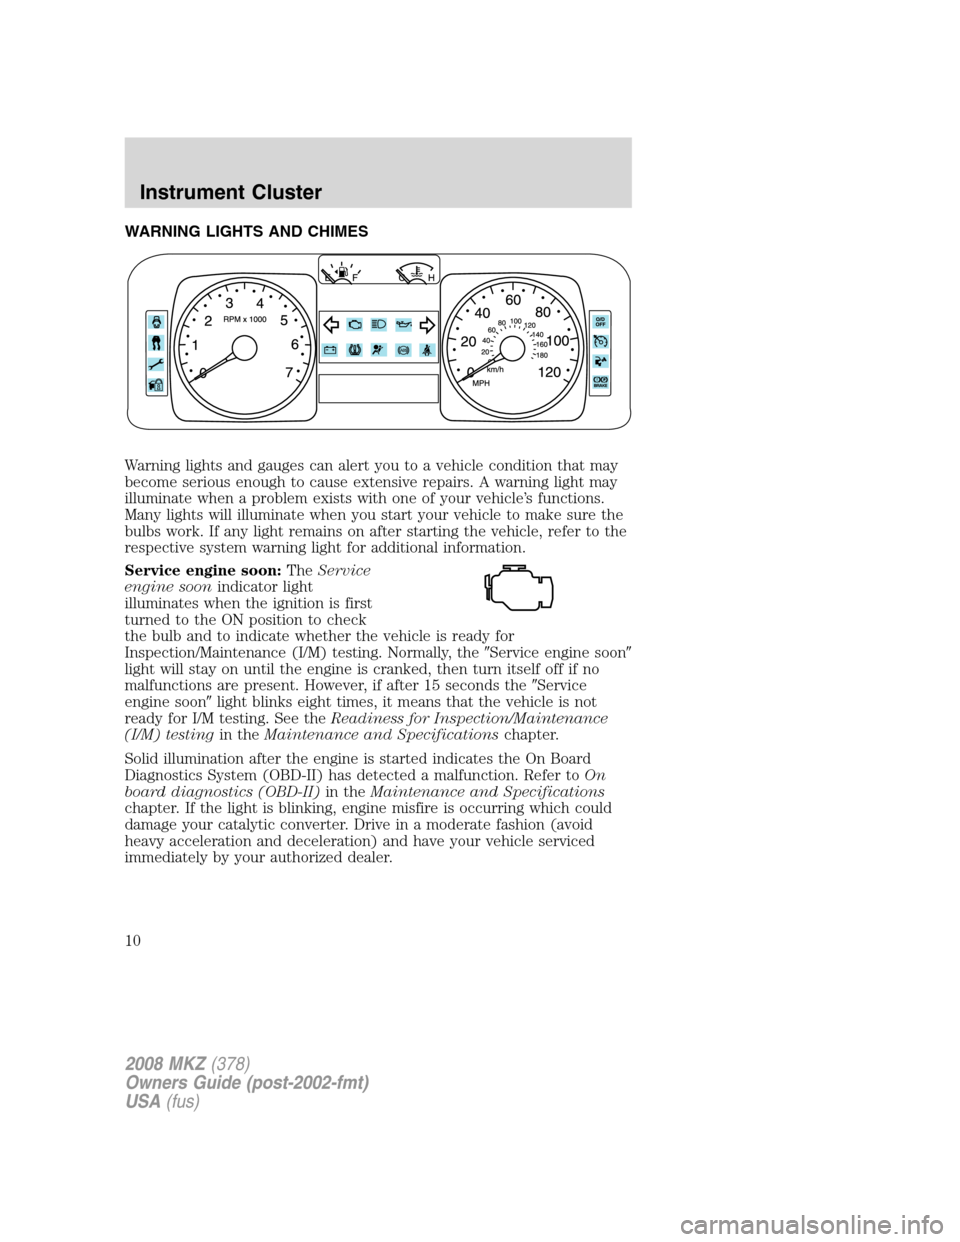 LINCOLN MKZ 2008  Owners Manual, Page 10